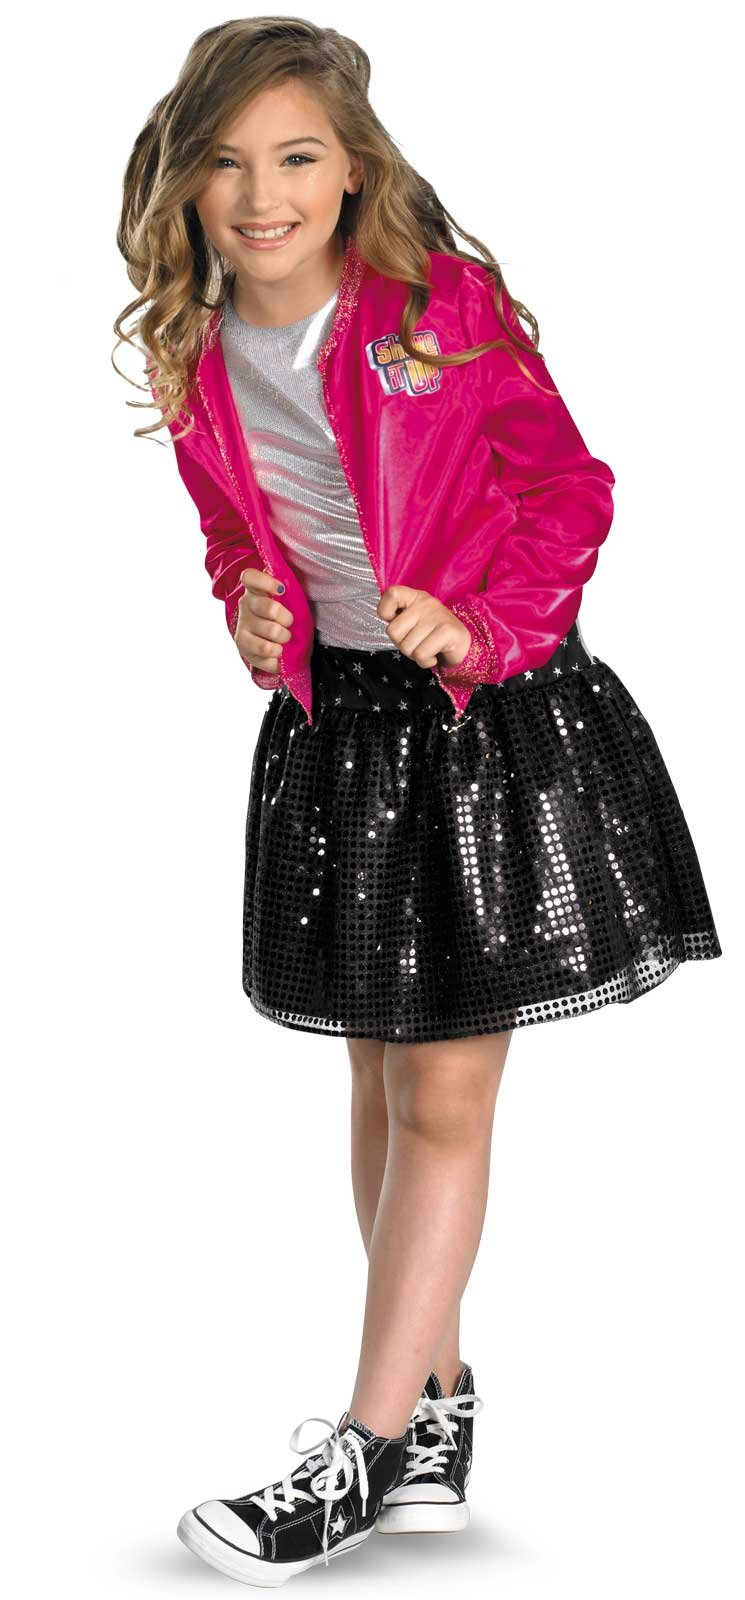 Disney Shake It Up! Child Costume